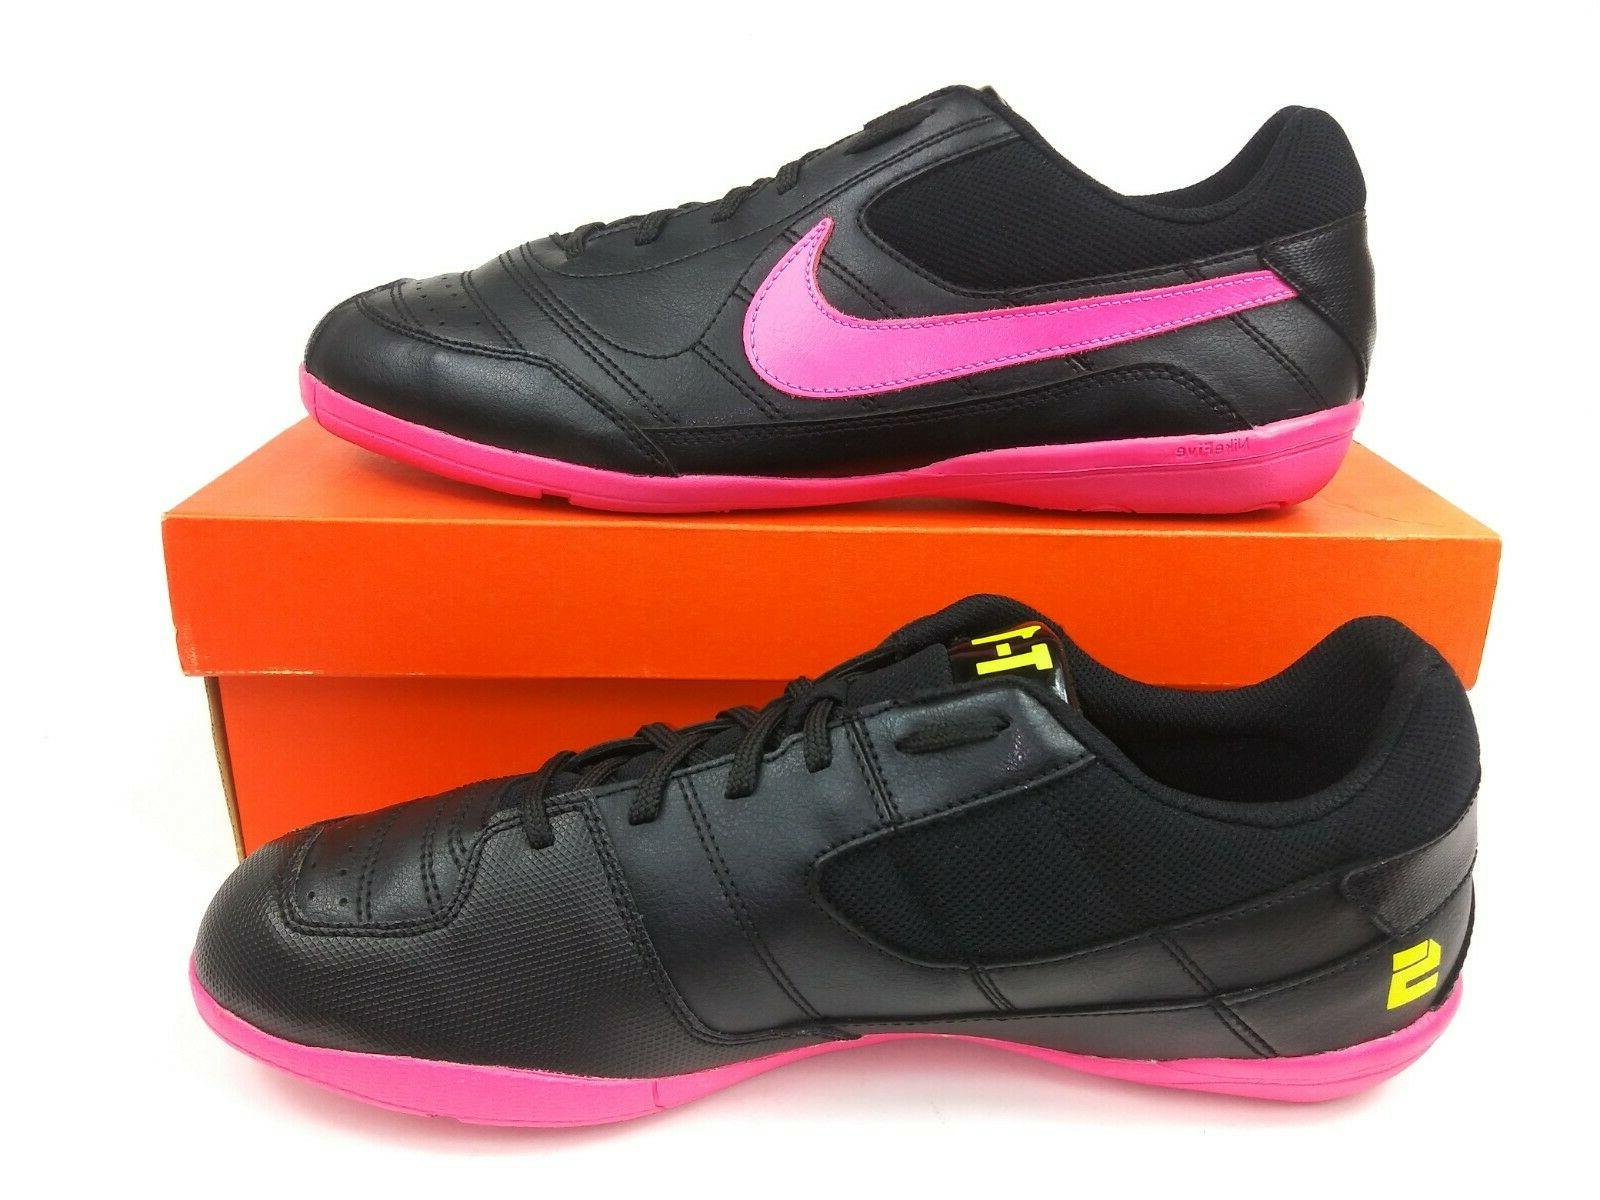 Nike Mens T-1 FS Pink Soccer Shoes Cleats